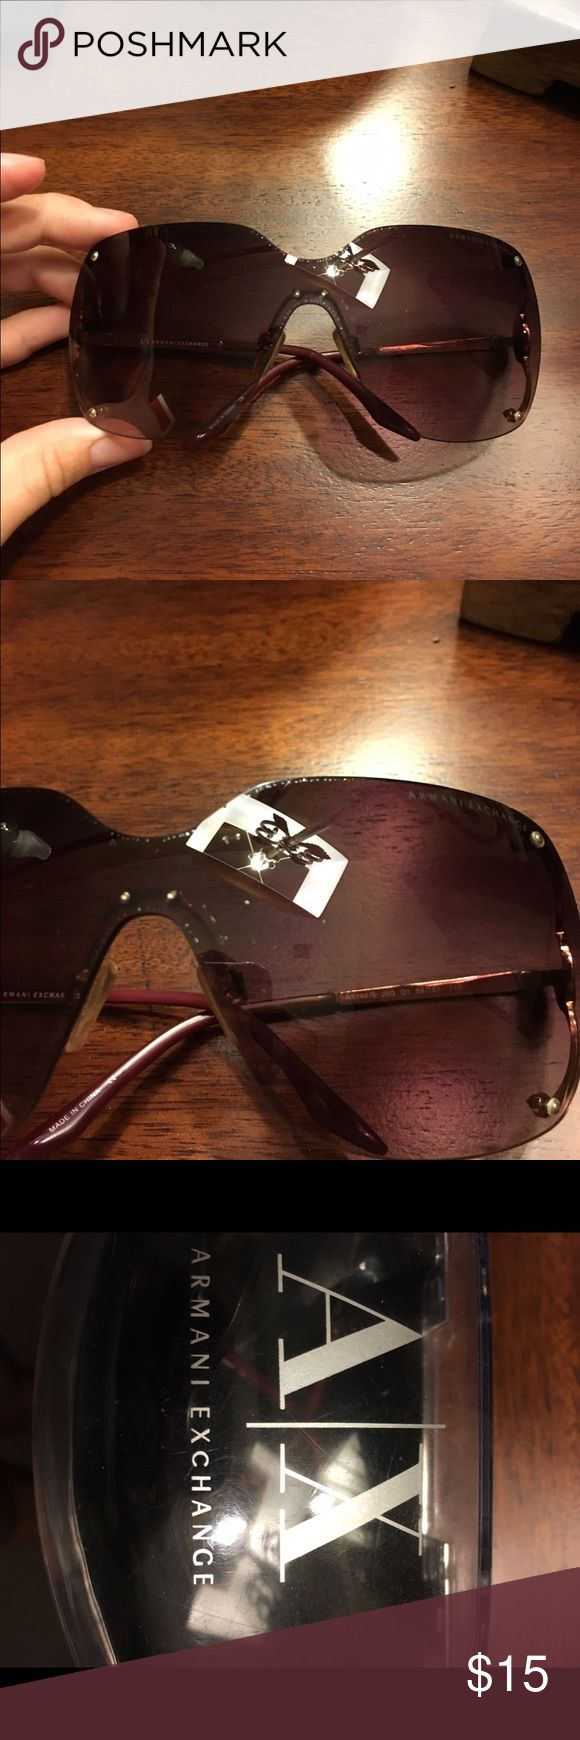 Used Armani Exchange sunglasses Very used, but still great glasses! Has some spots on the actual lenses. Armani Exchange Accessories Sunglasses